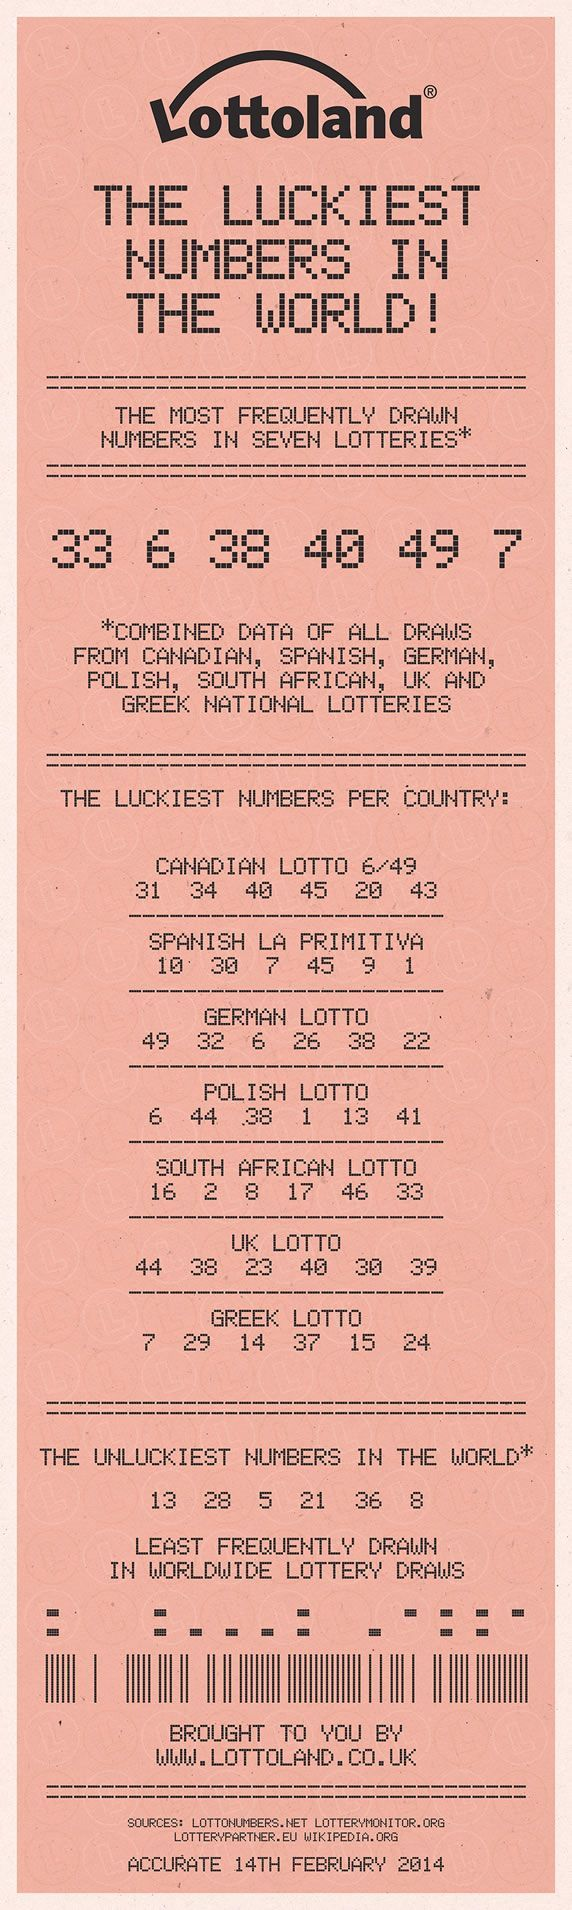 [Infographic] The Luckiest Numbers in the World #lifehacksmoney